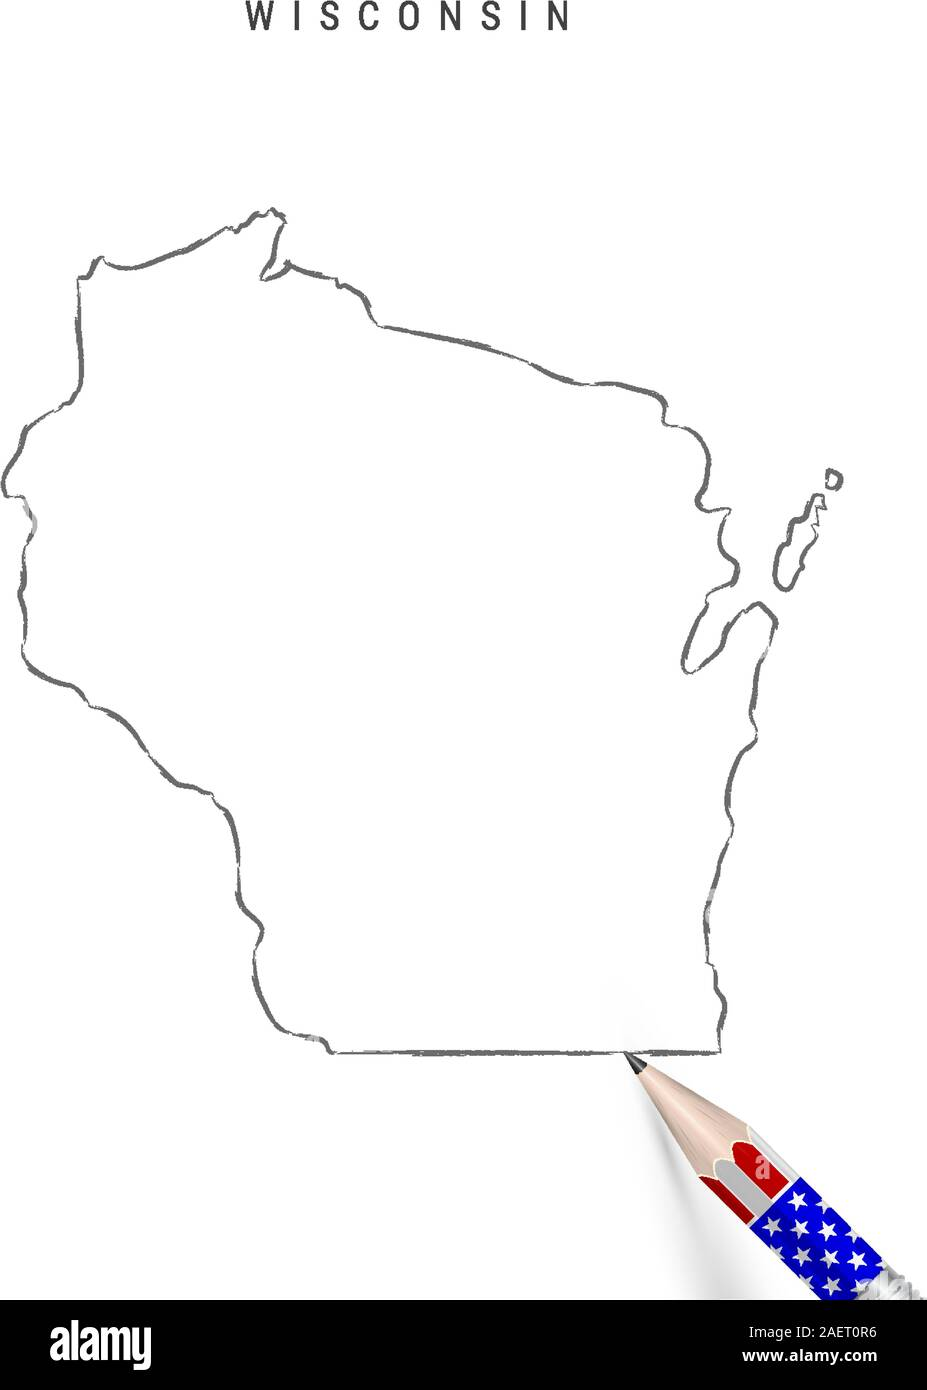 Wisconsin US state vector map pencil sketch. Wisconsin ...